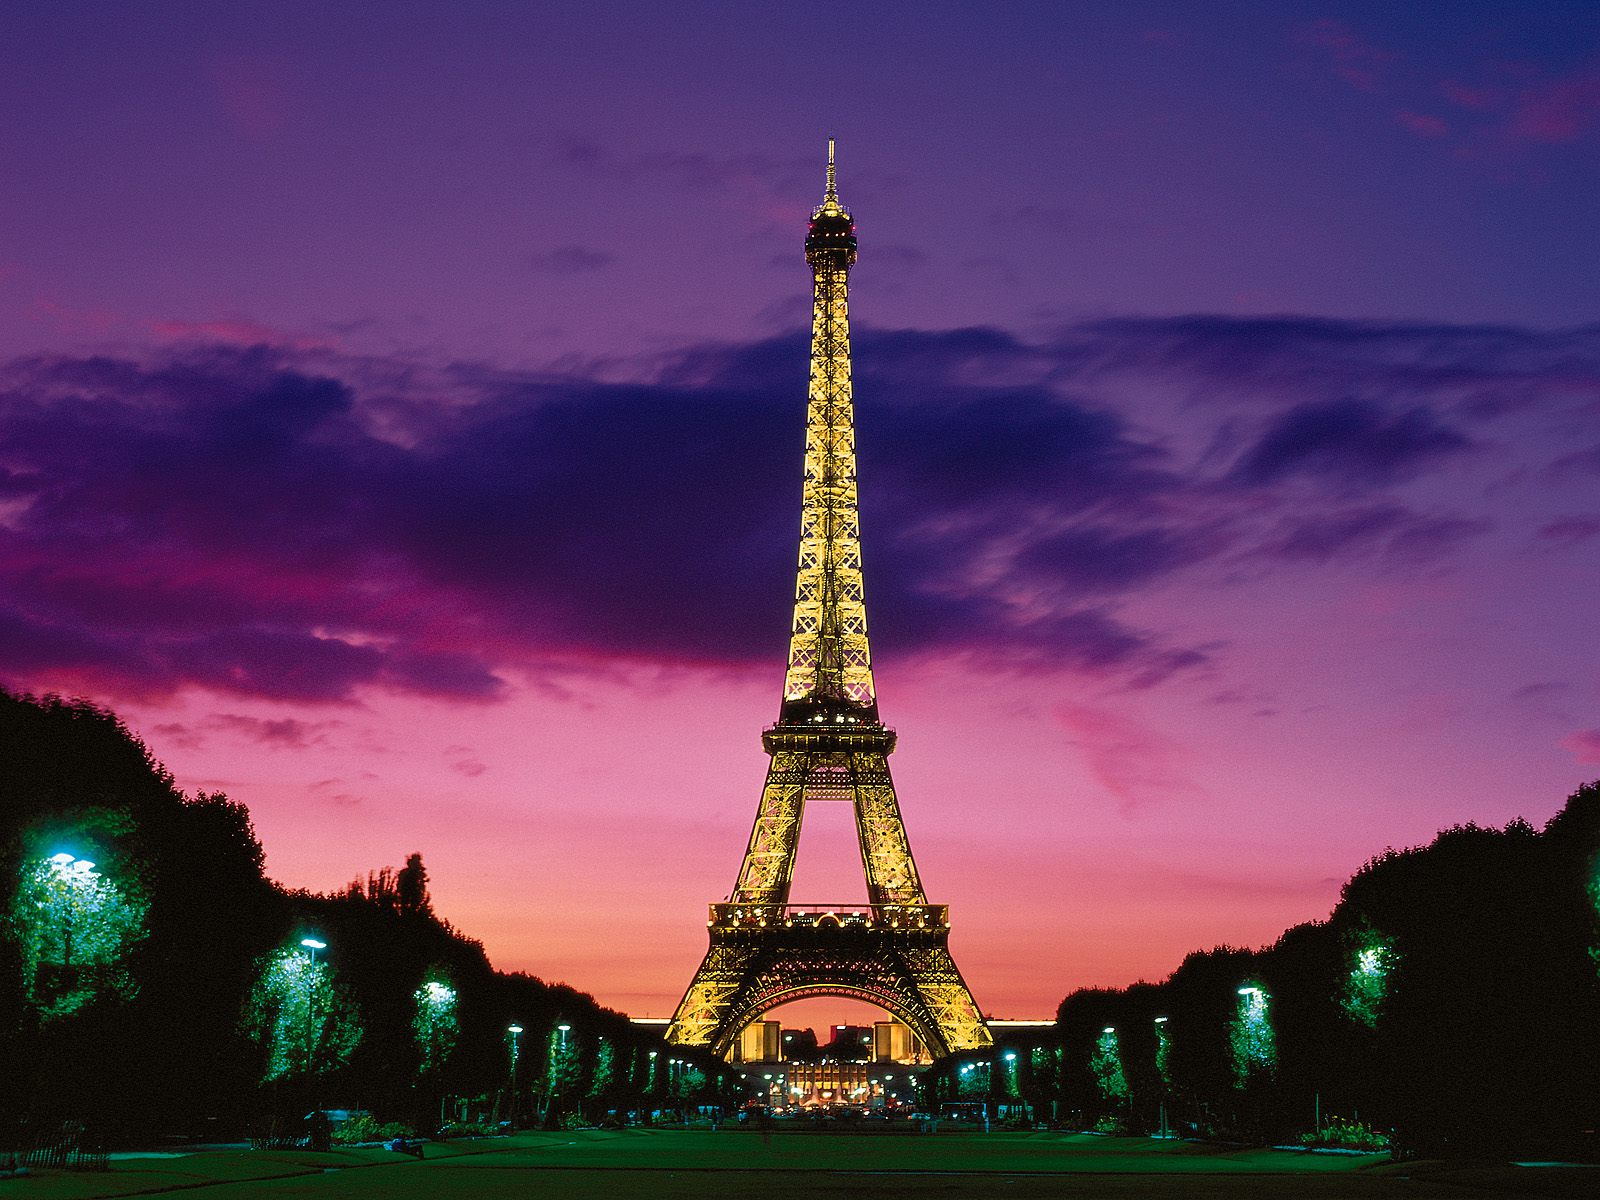 Eiffel Tower at Night Paris France wallpaper